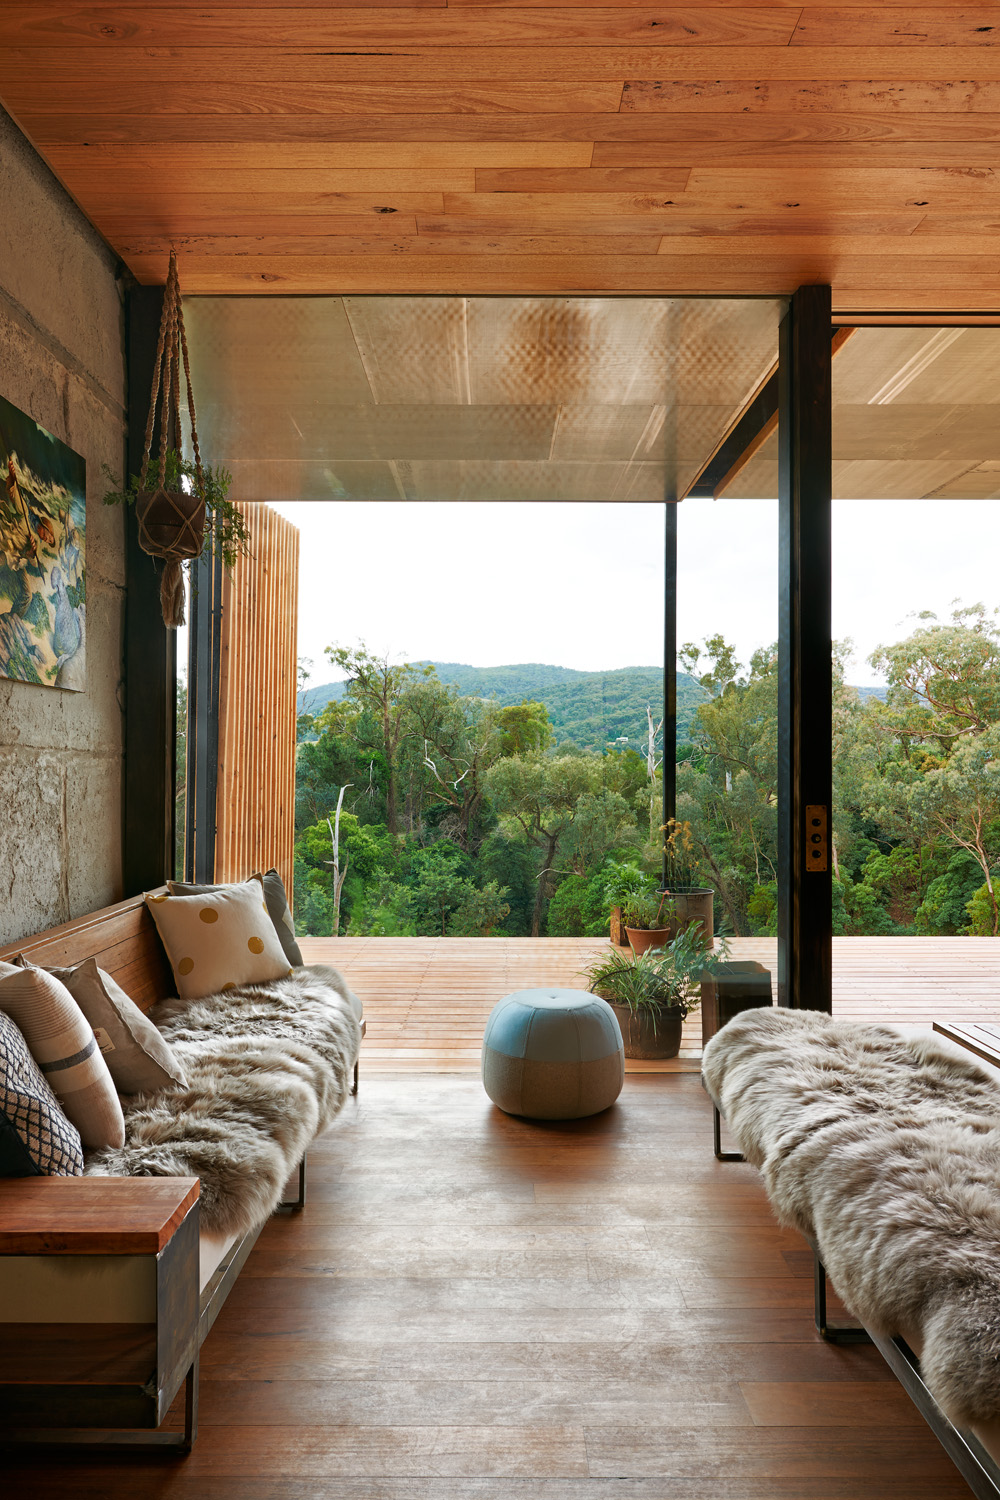 Grand designs australia yackandandah sawmill house for Australian home interior designs